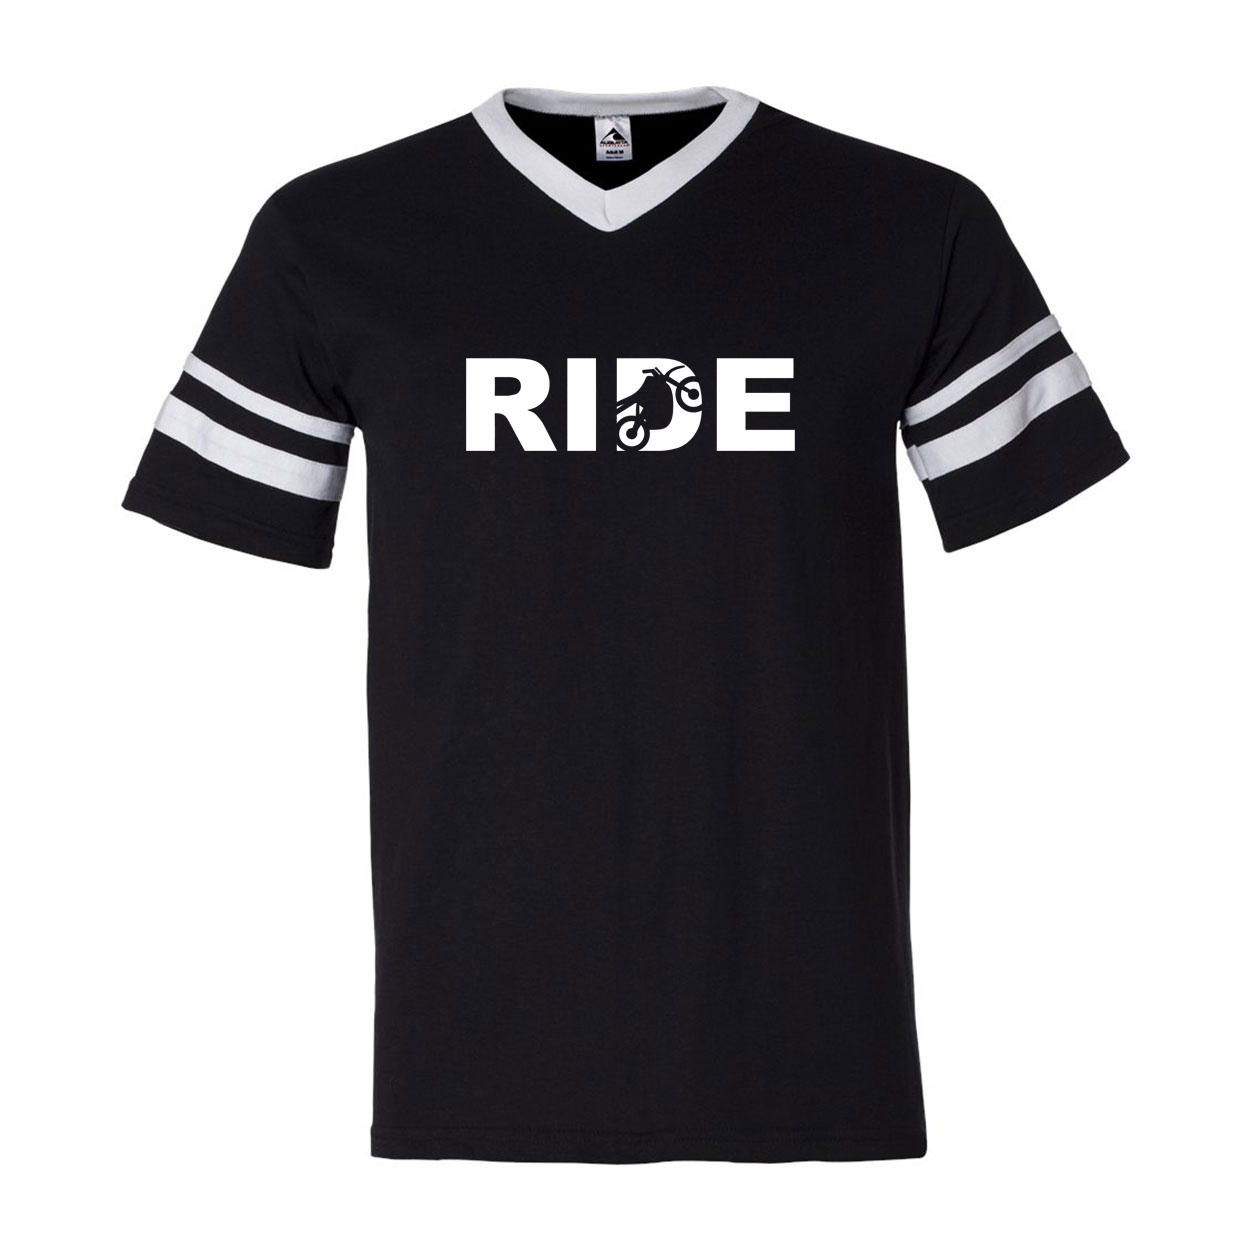 Ride Moto Logo Classic Premium Striped Jersey T-Shirt Black/White (White Logo)